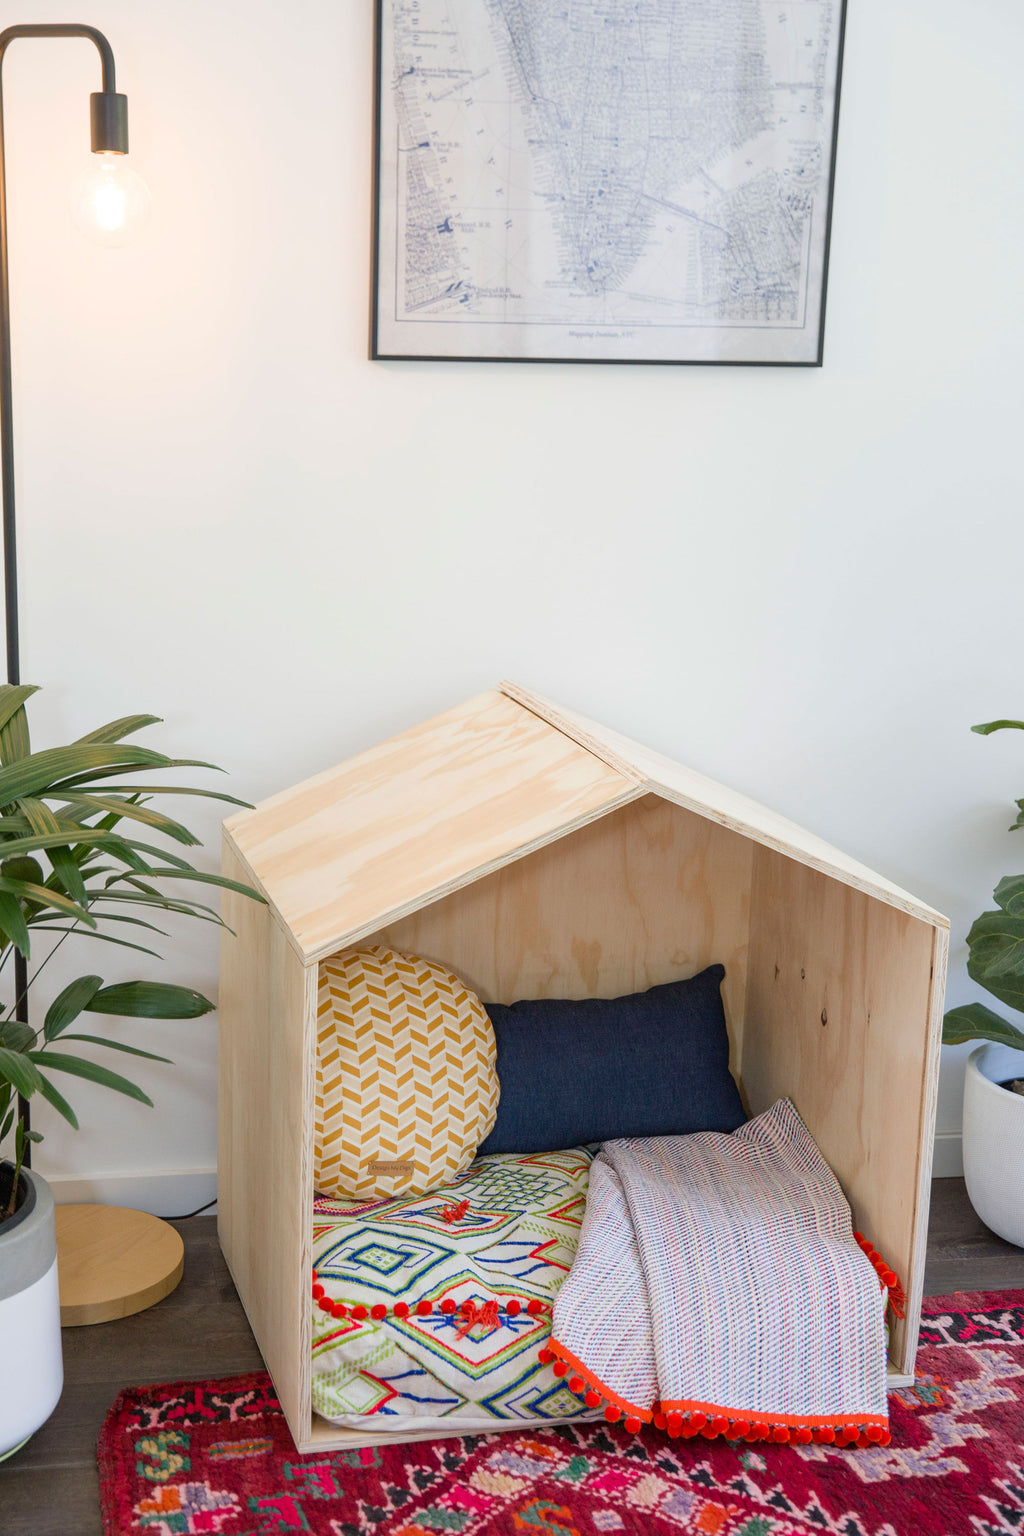 Stylish Wooden Dog Beds Online Australia - Design my Digs Dog Bed